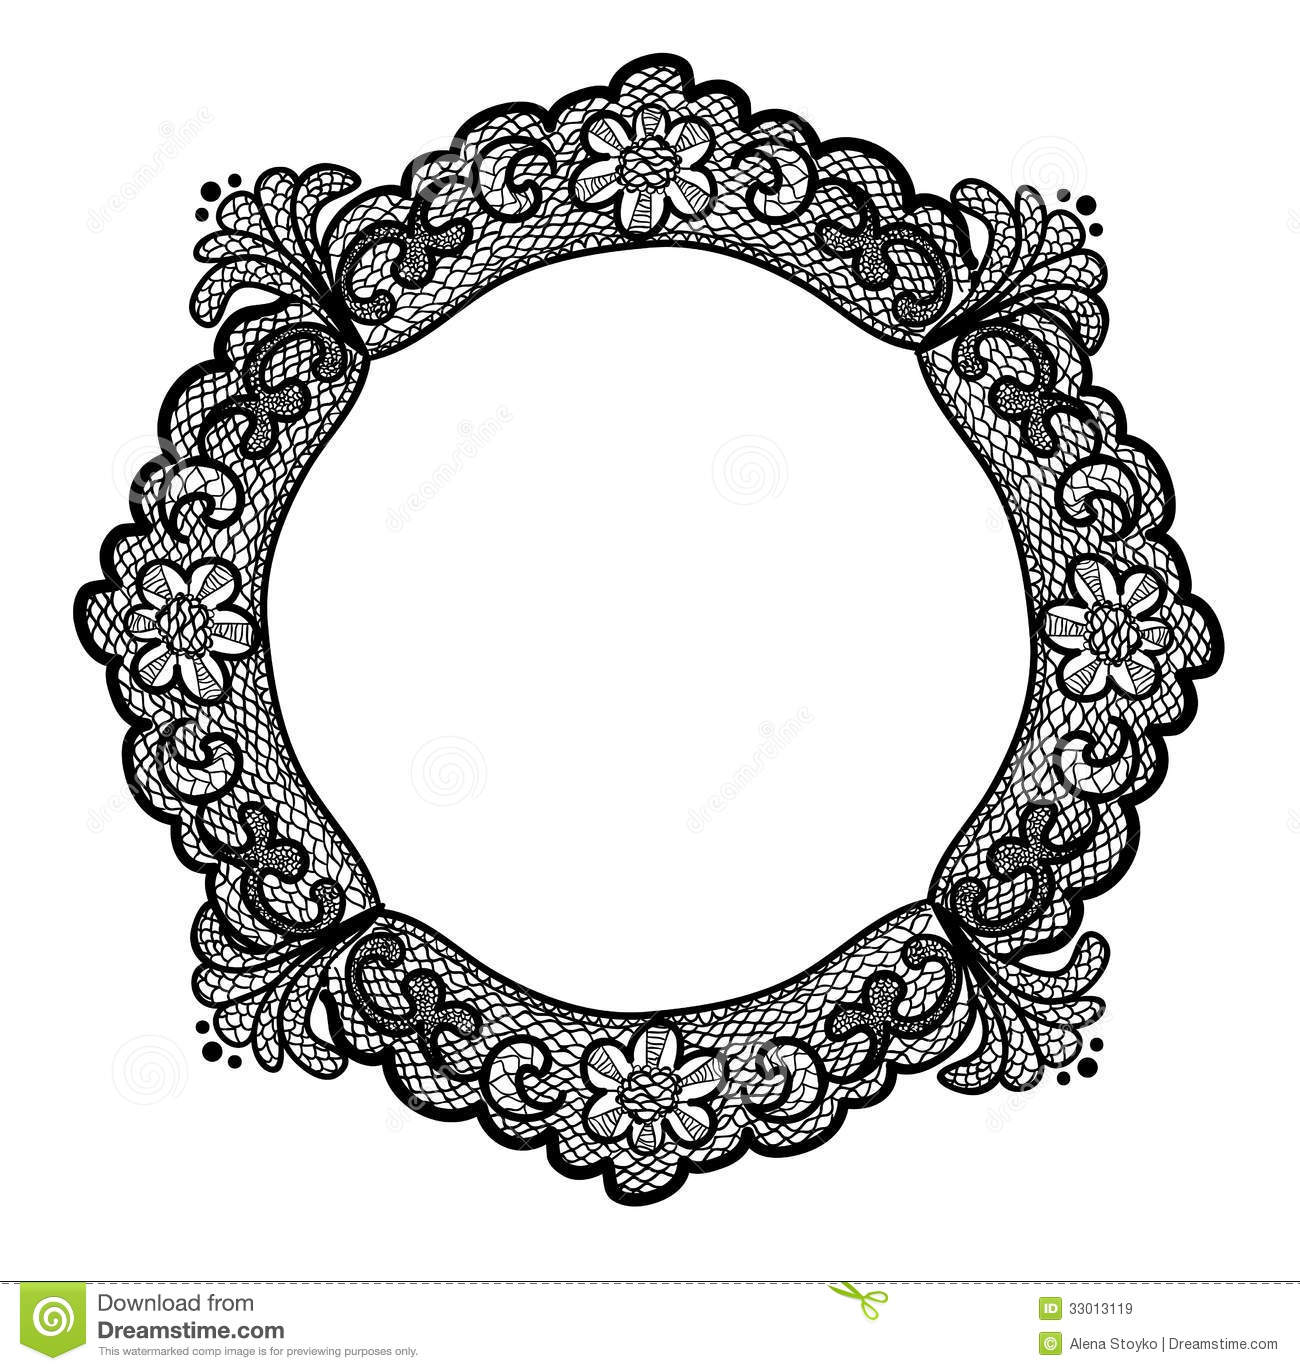 Royalty Free Stock Images Lace Frame File Eps Format Image33013119 on Romantic Frame Transparent